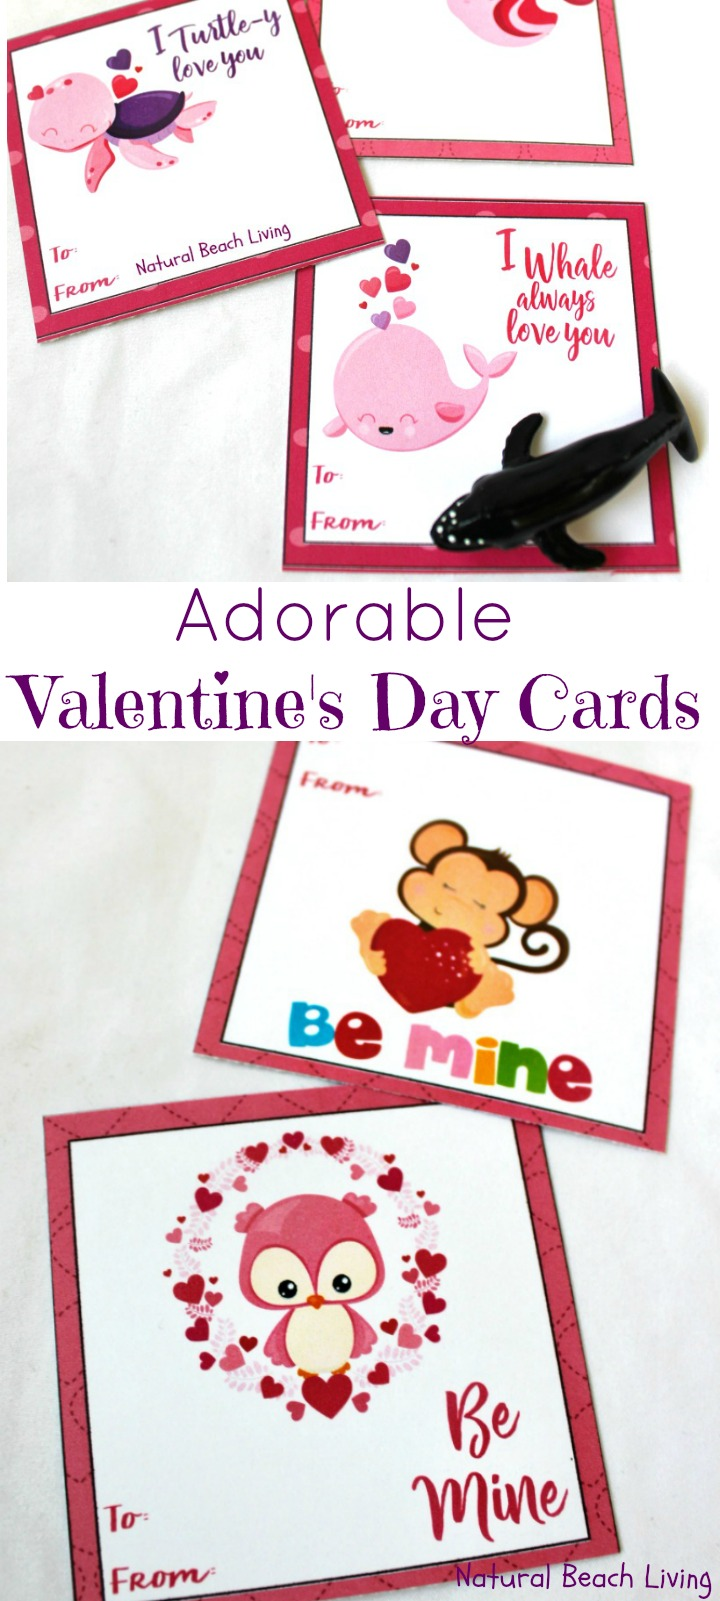 Adorable preschool valentines day cards free printables for kids practice handwriting and fine motor